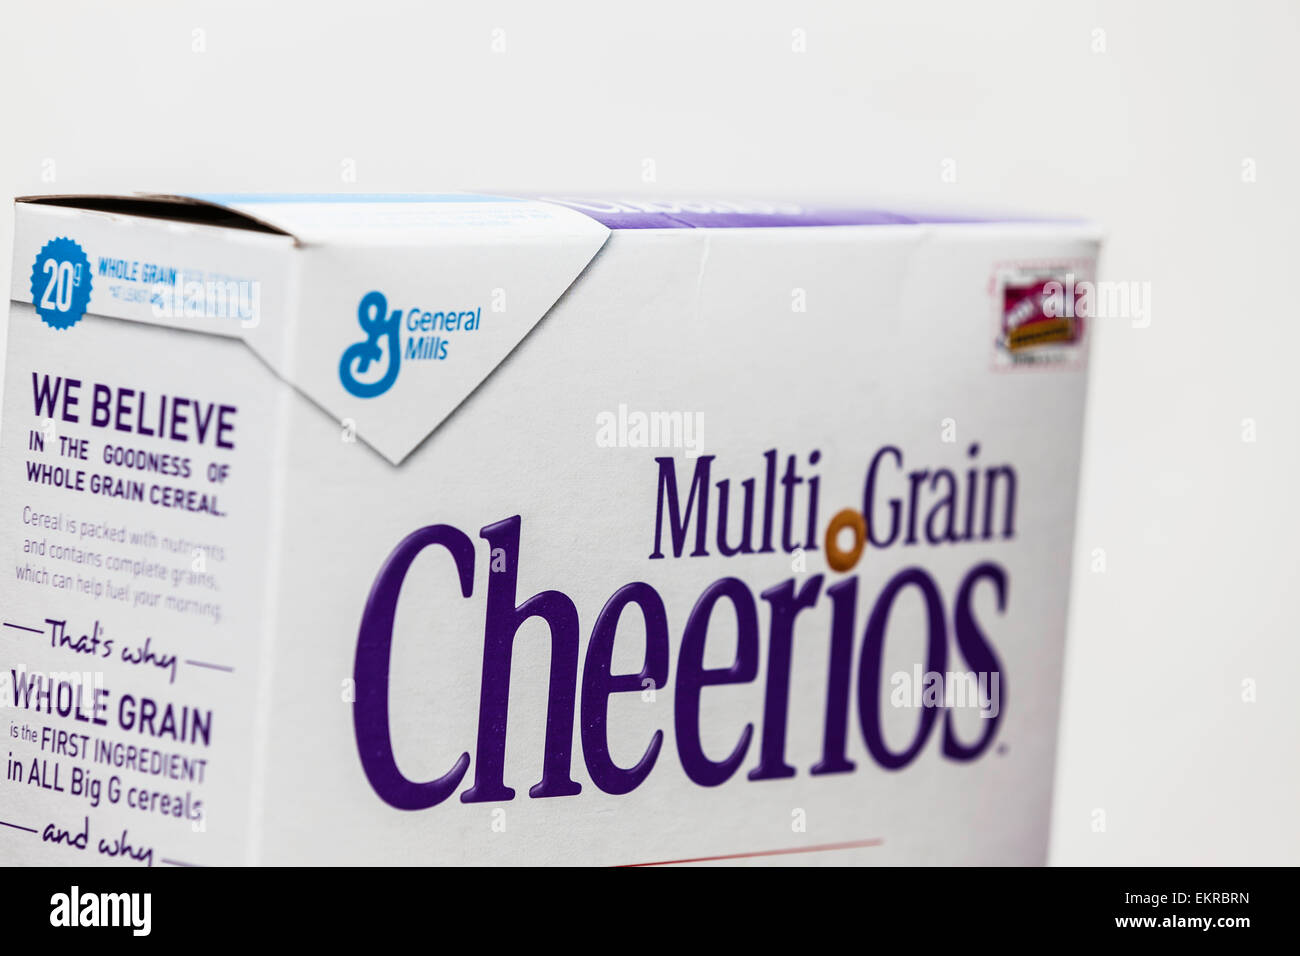 A box of whole grain cheerios and the General Mills Logo.  General Mills is considered a top candidate for a takeover. - Stock Image